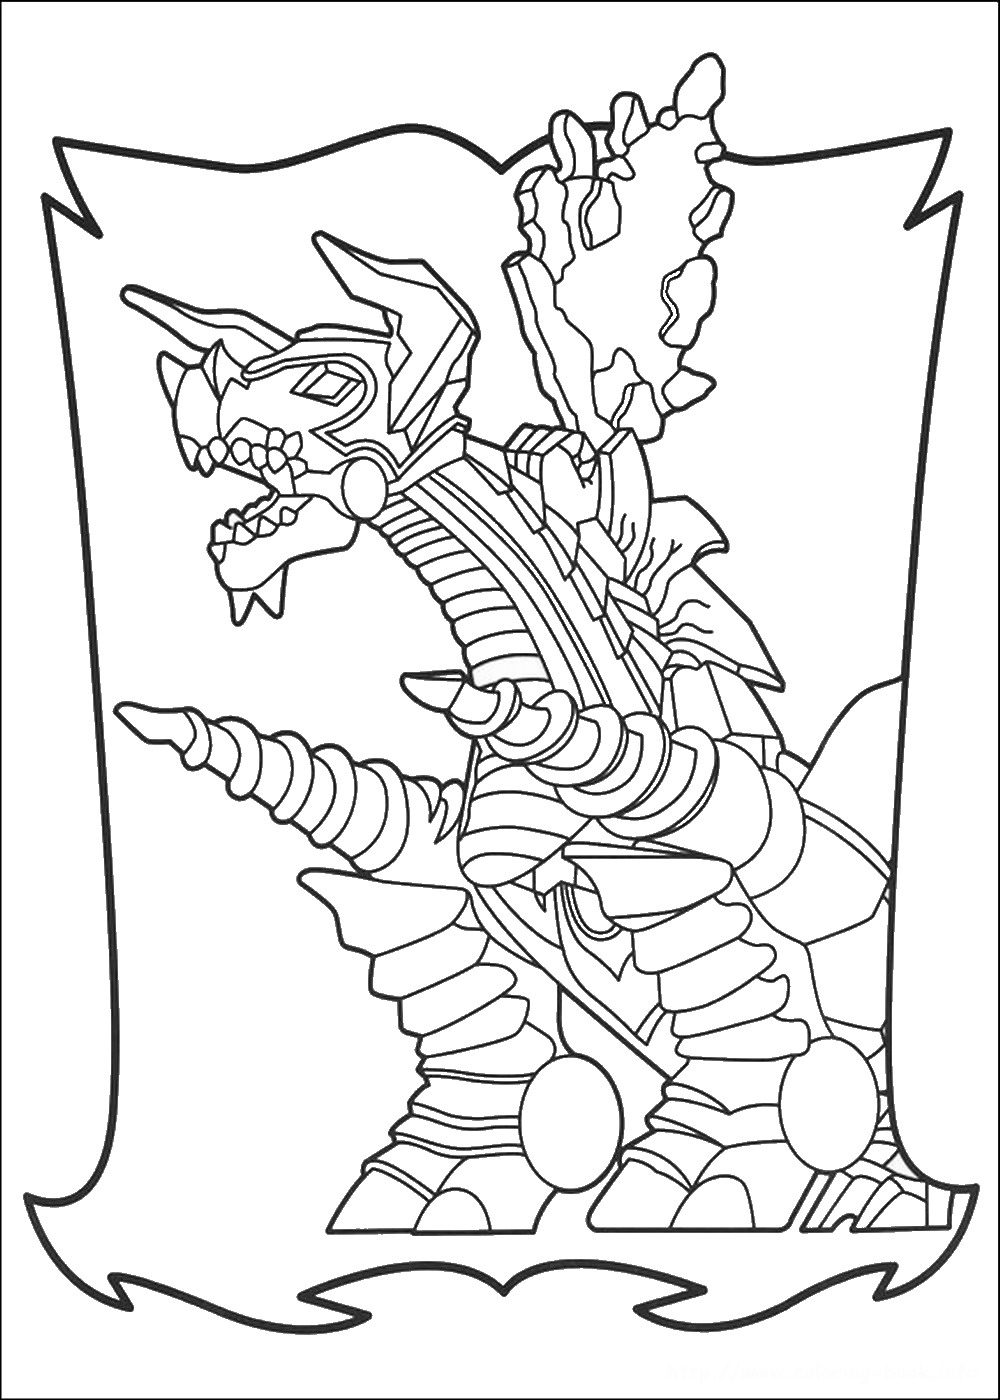 coloring pictures of power rangers kids page power rangers coloring pages rangers coloring of pictures power